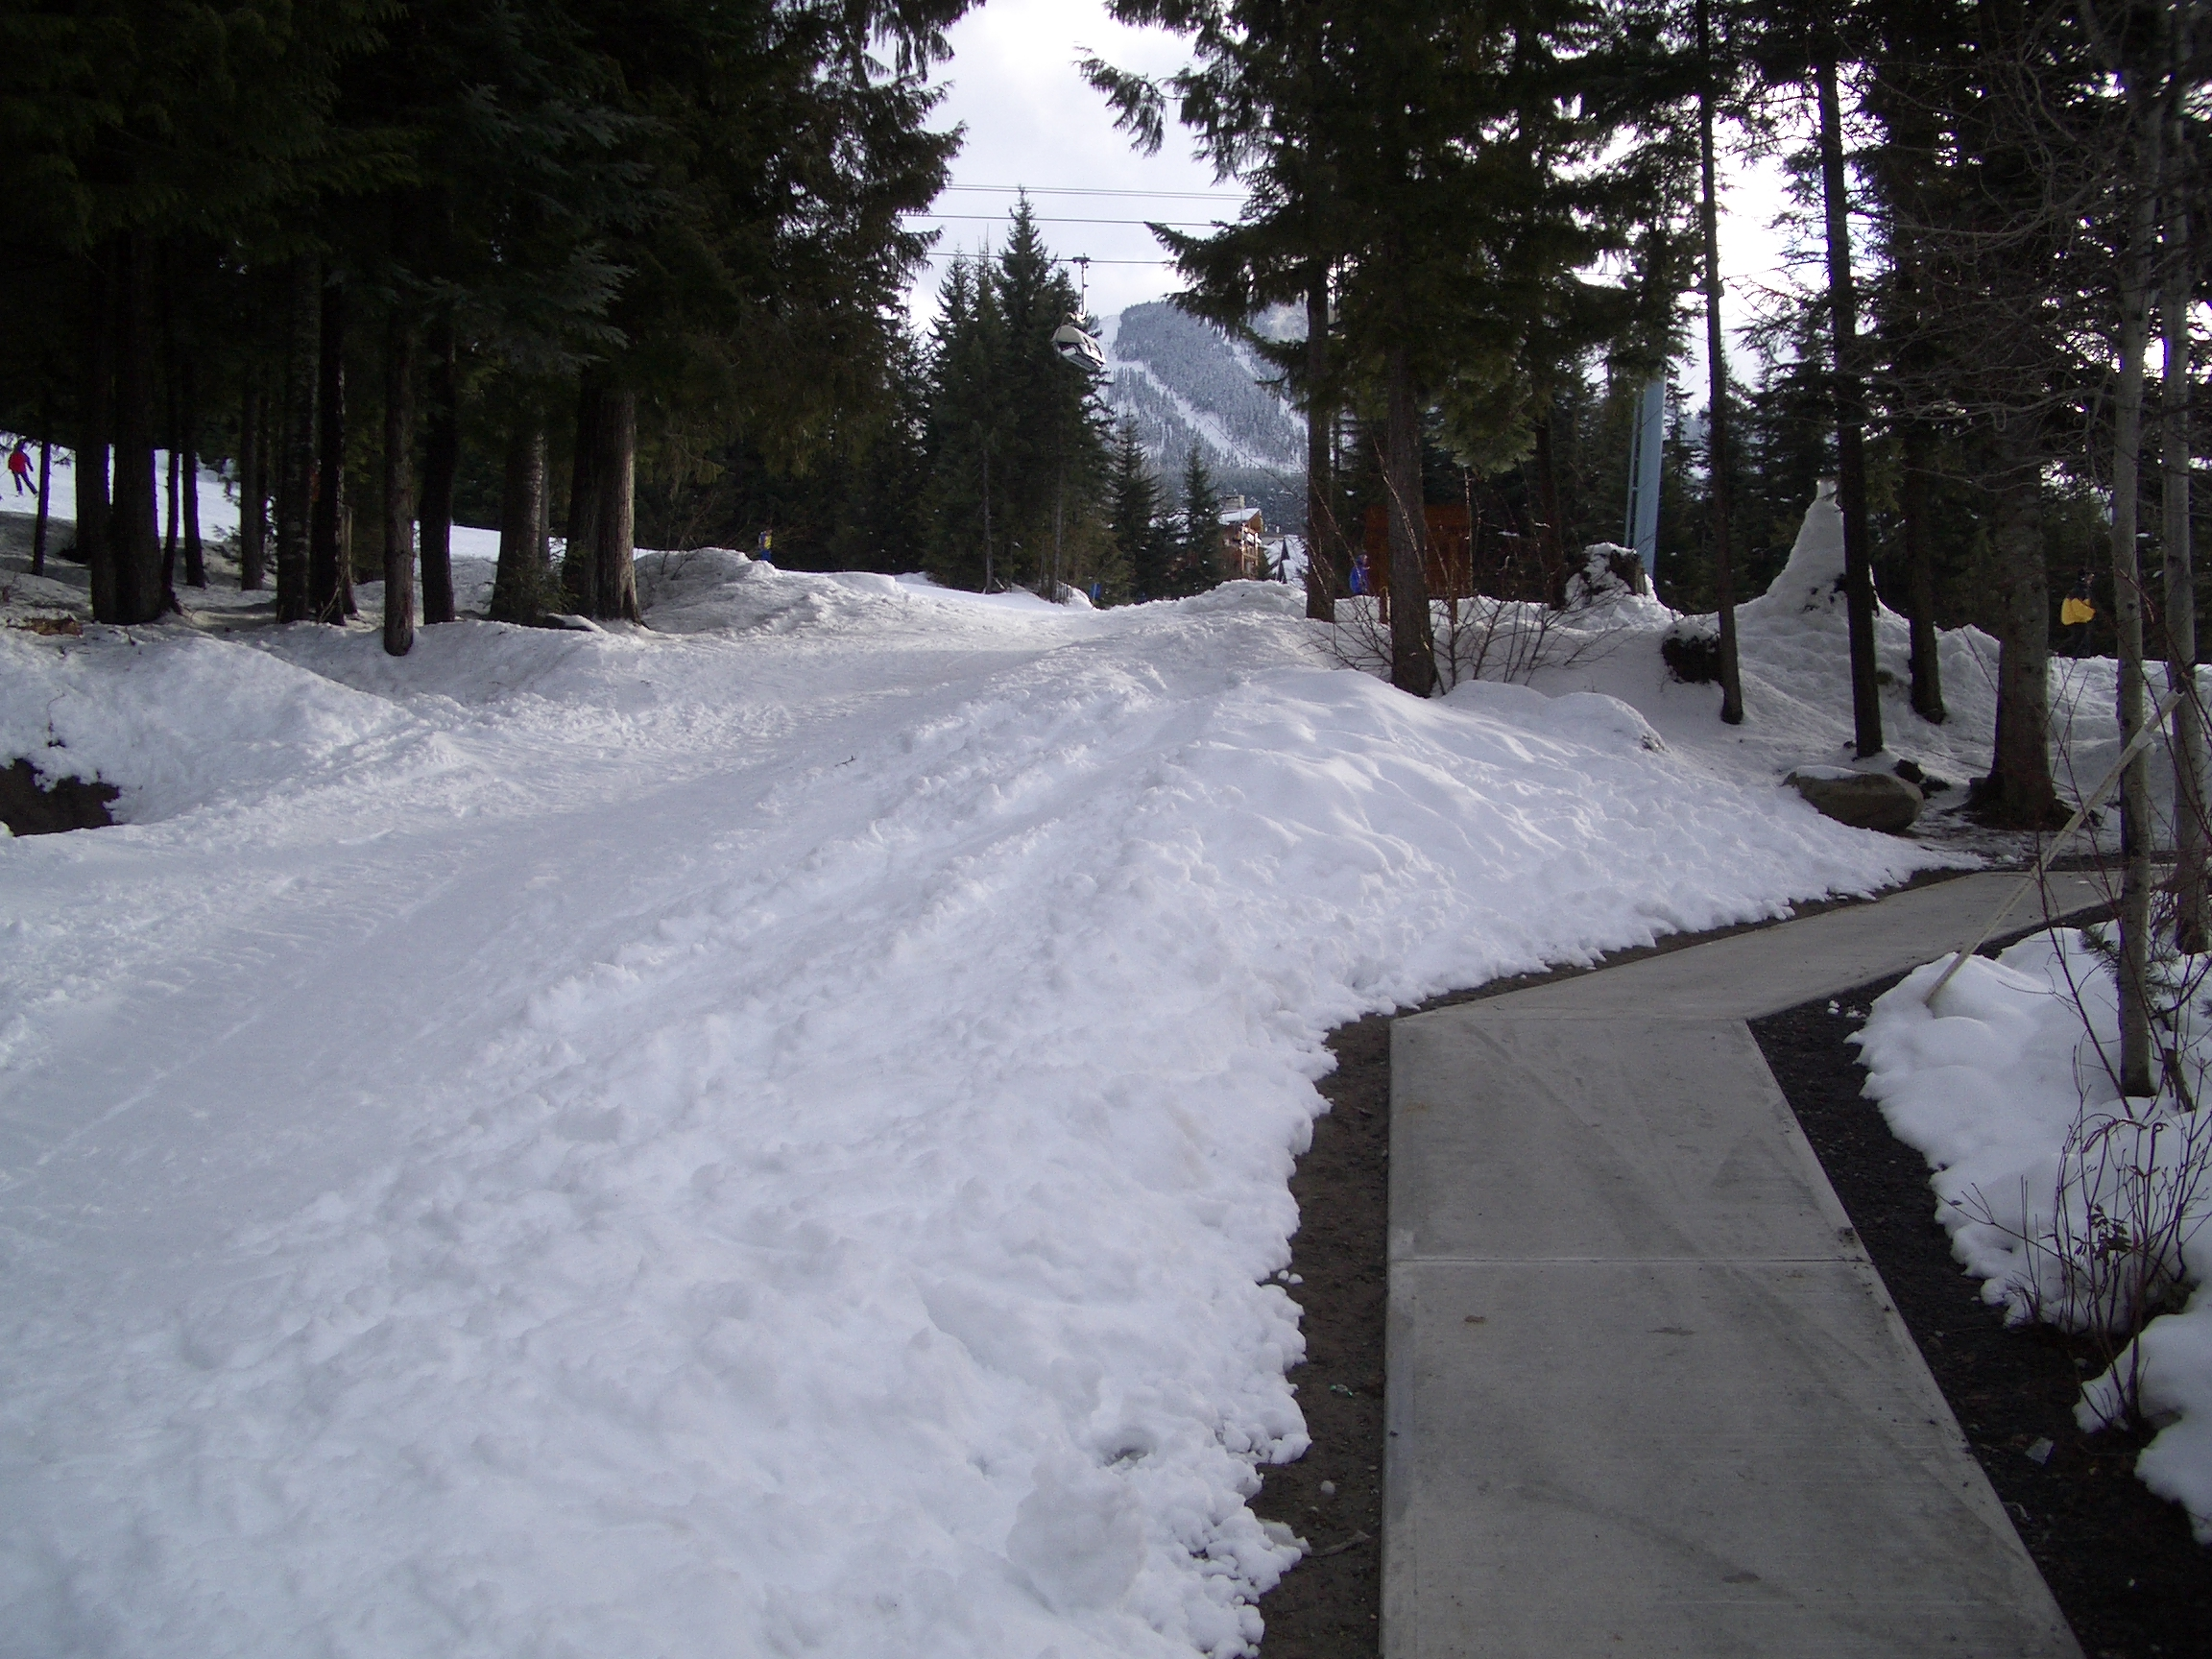 Whistler Accommodations - Private heated sidewalk to the ski hill (20ft) - Rentals By Owner